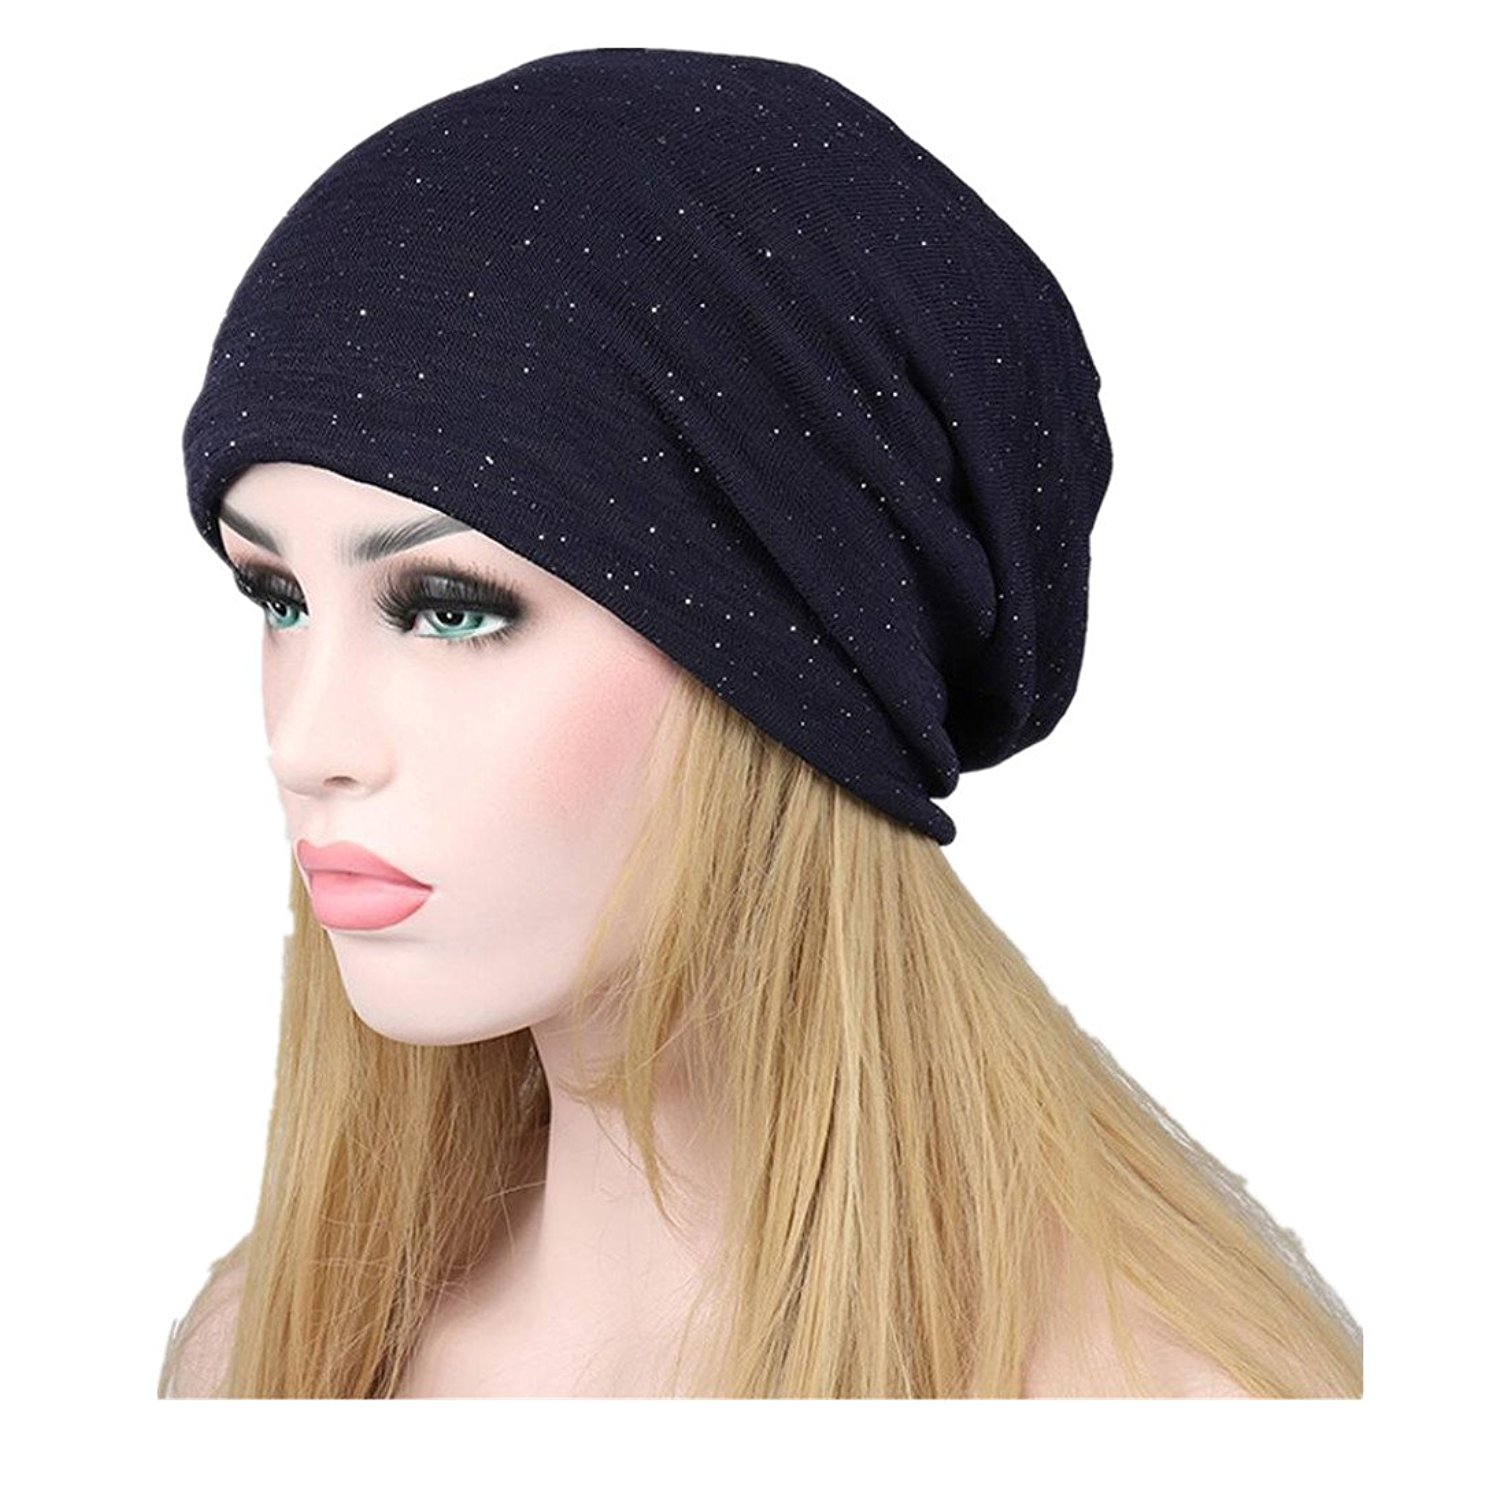 0287a560b54 Get Quotations · Slouchy Beanie - Fheaven Chunky Slouch Beanie Hats for  Women Warm Winter Beanie Head Cap Outdoor